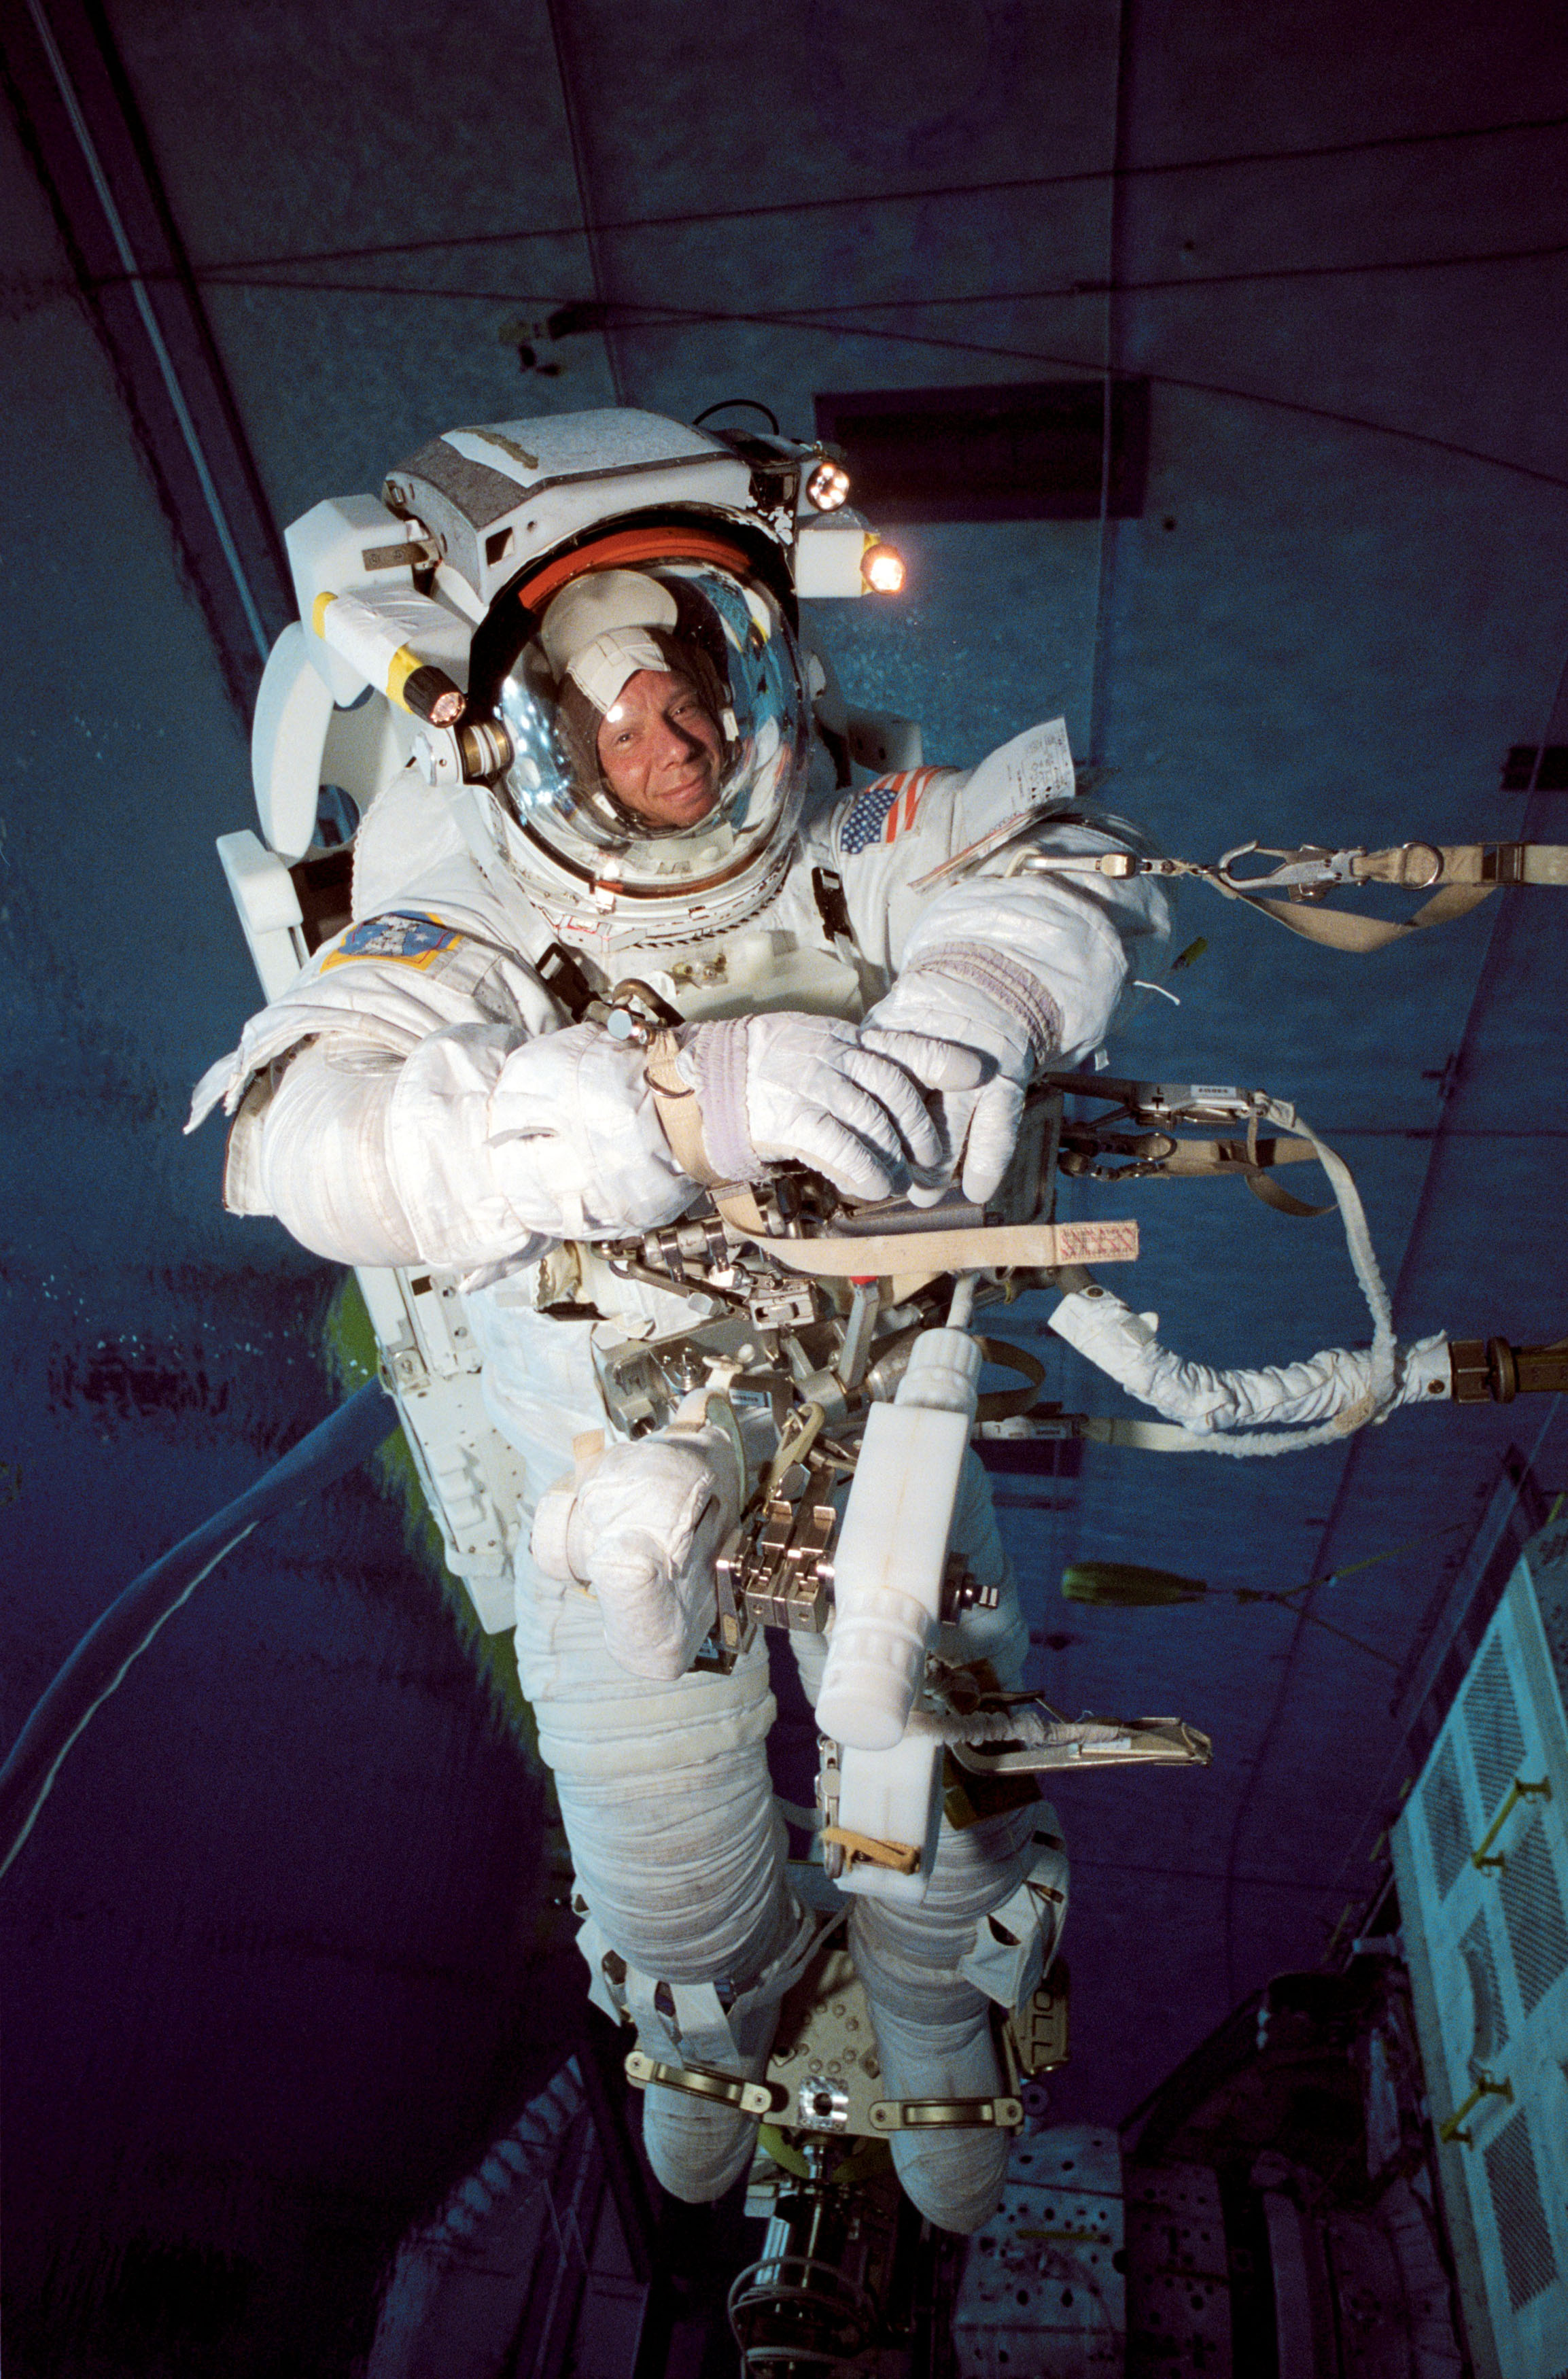 Space in Images - 2006 - 08 - Astronaut Christer Fuglesang ...